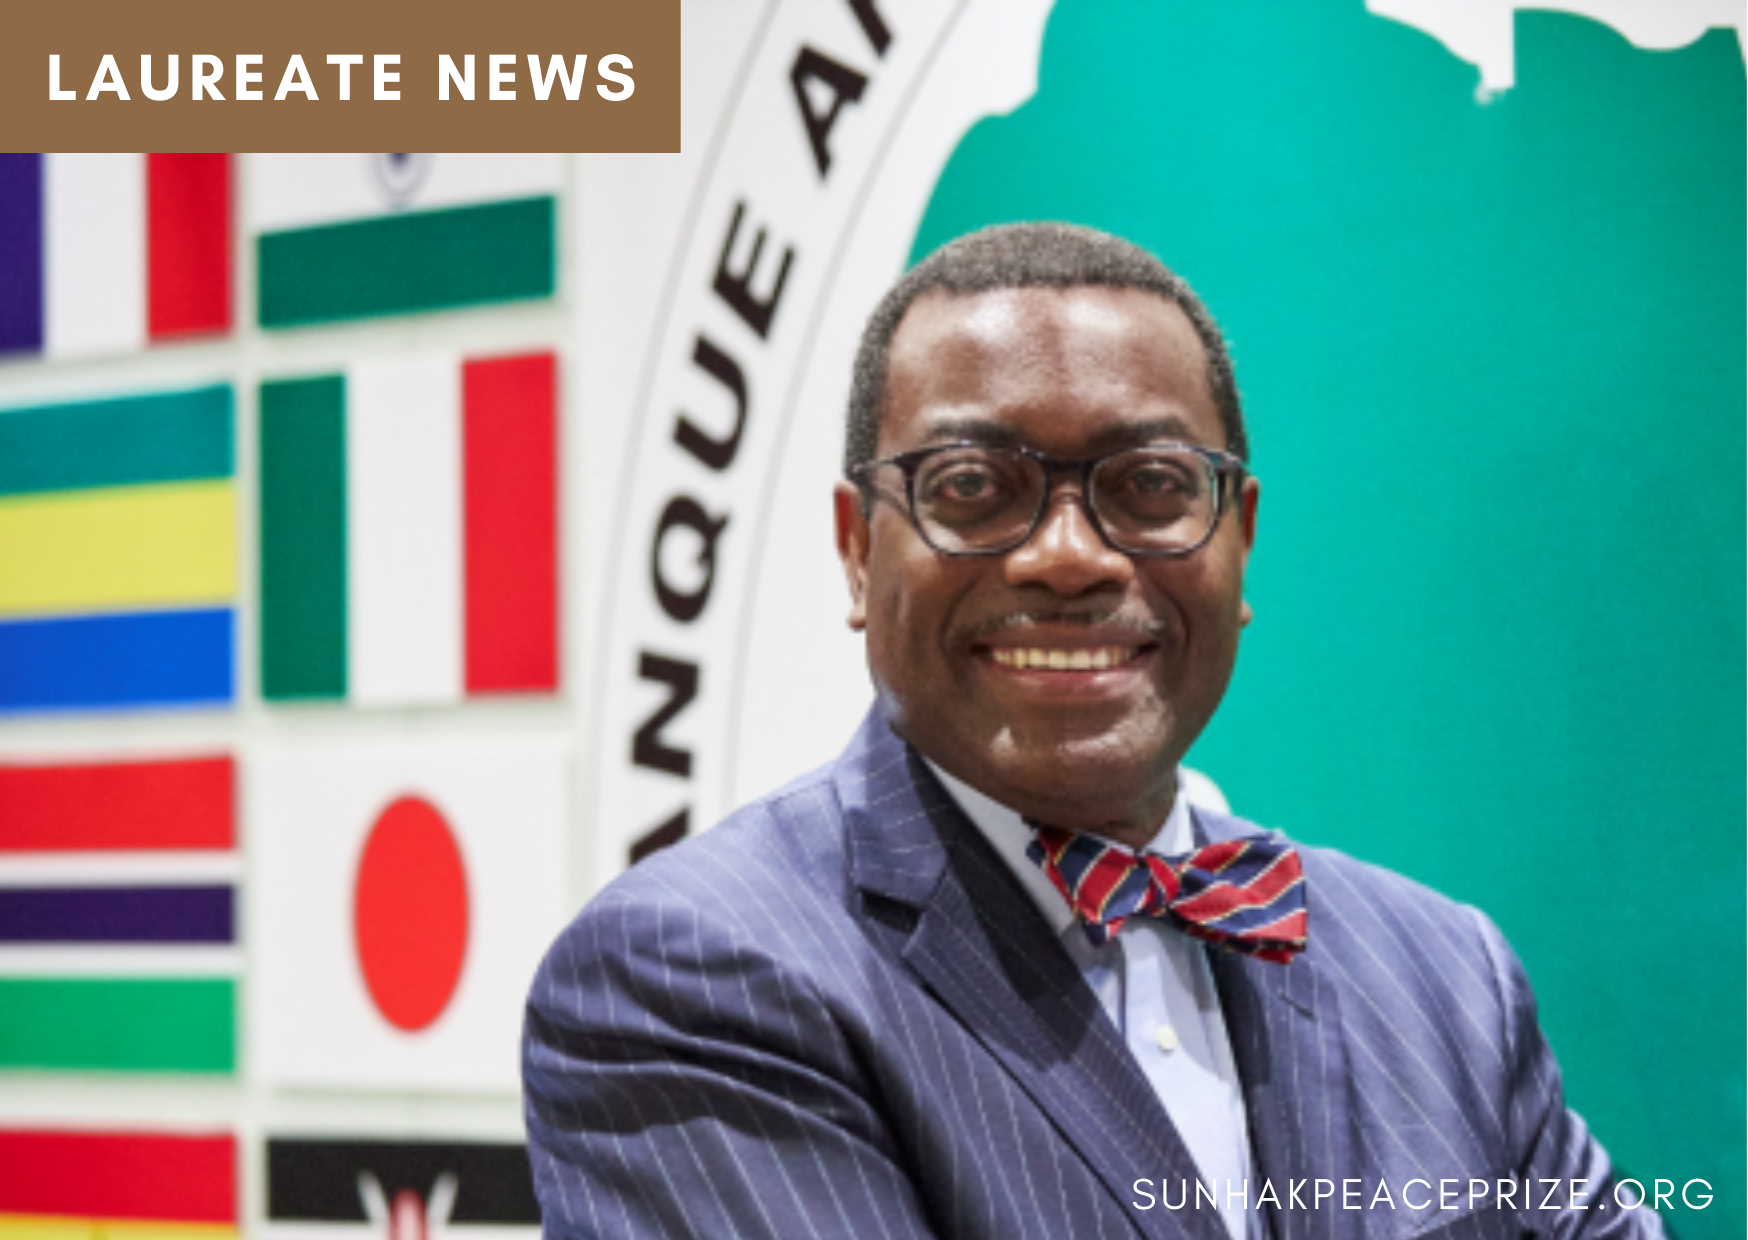 Dr. Akinwumi Adesina, Donates Cash Prizes of$500,000 to the World Fighters Foundation 썸네일